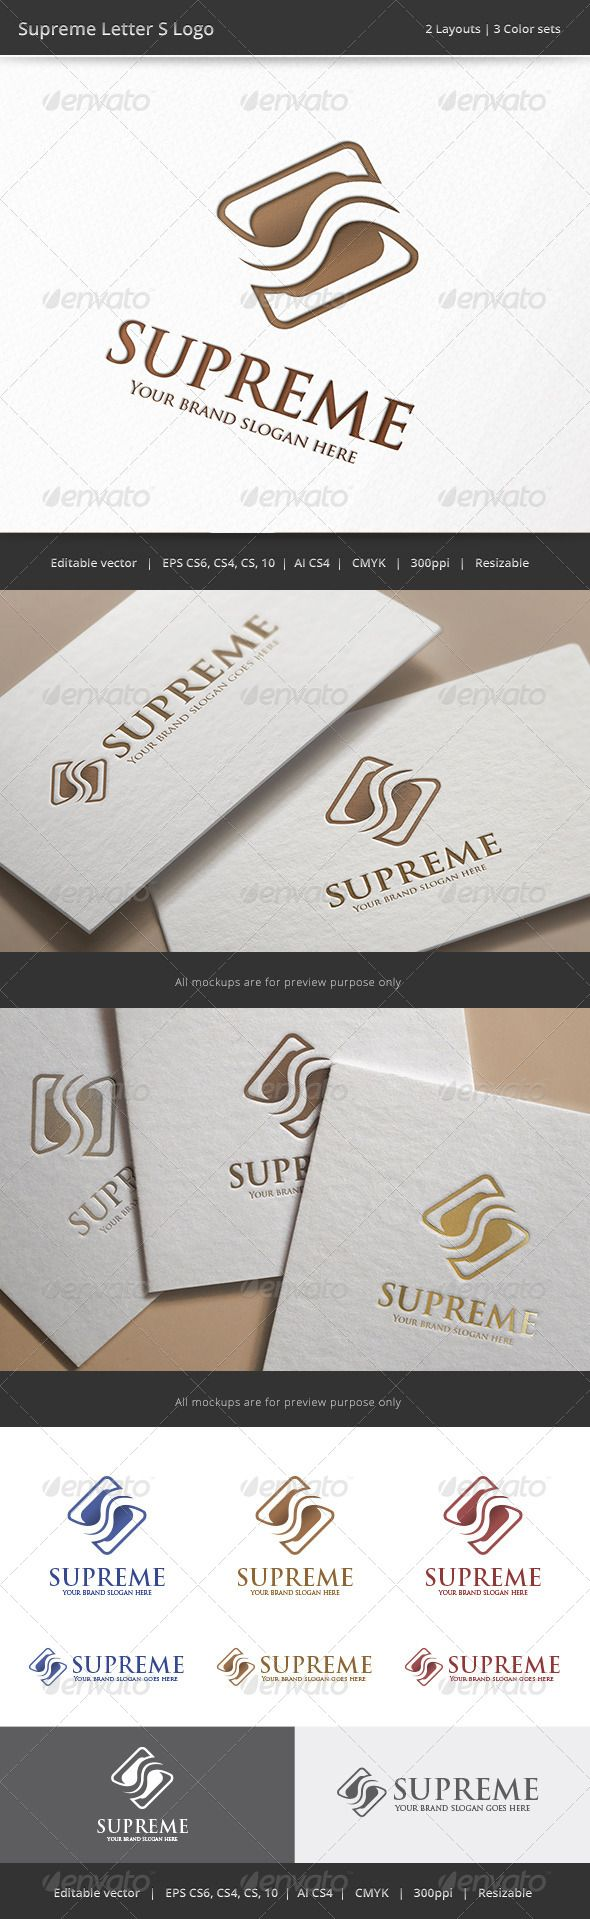 Supreme Letter S Logo — Vector EPS finance consult